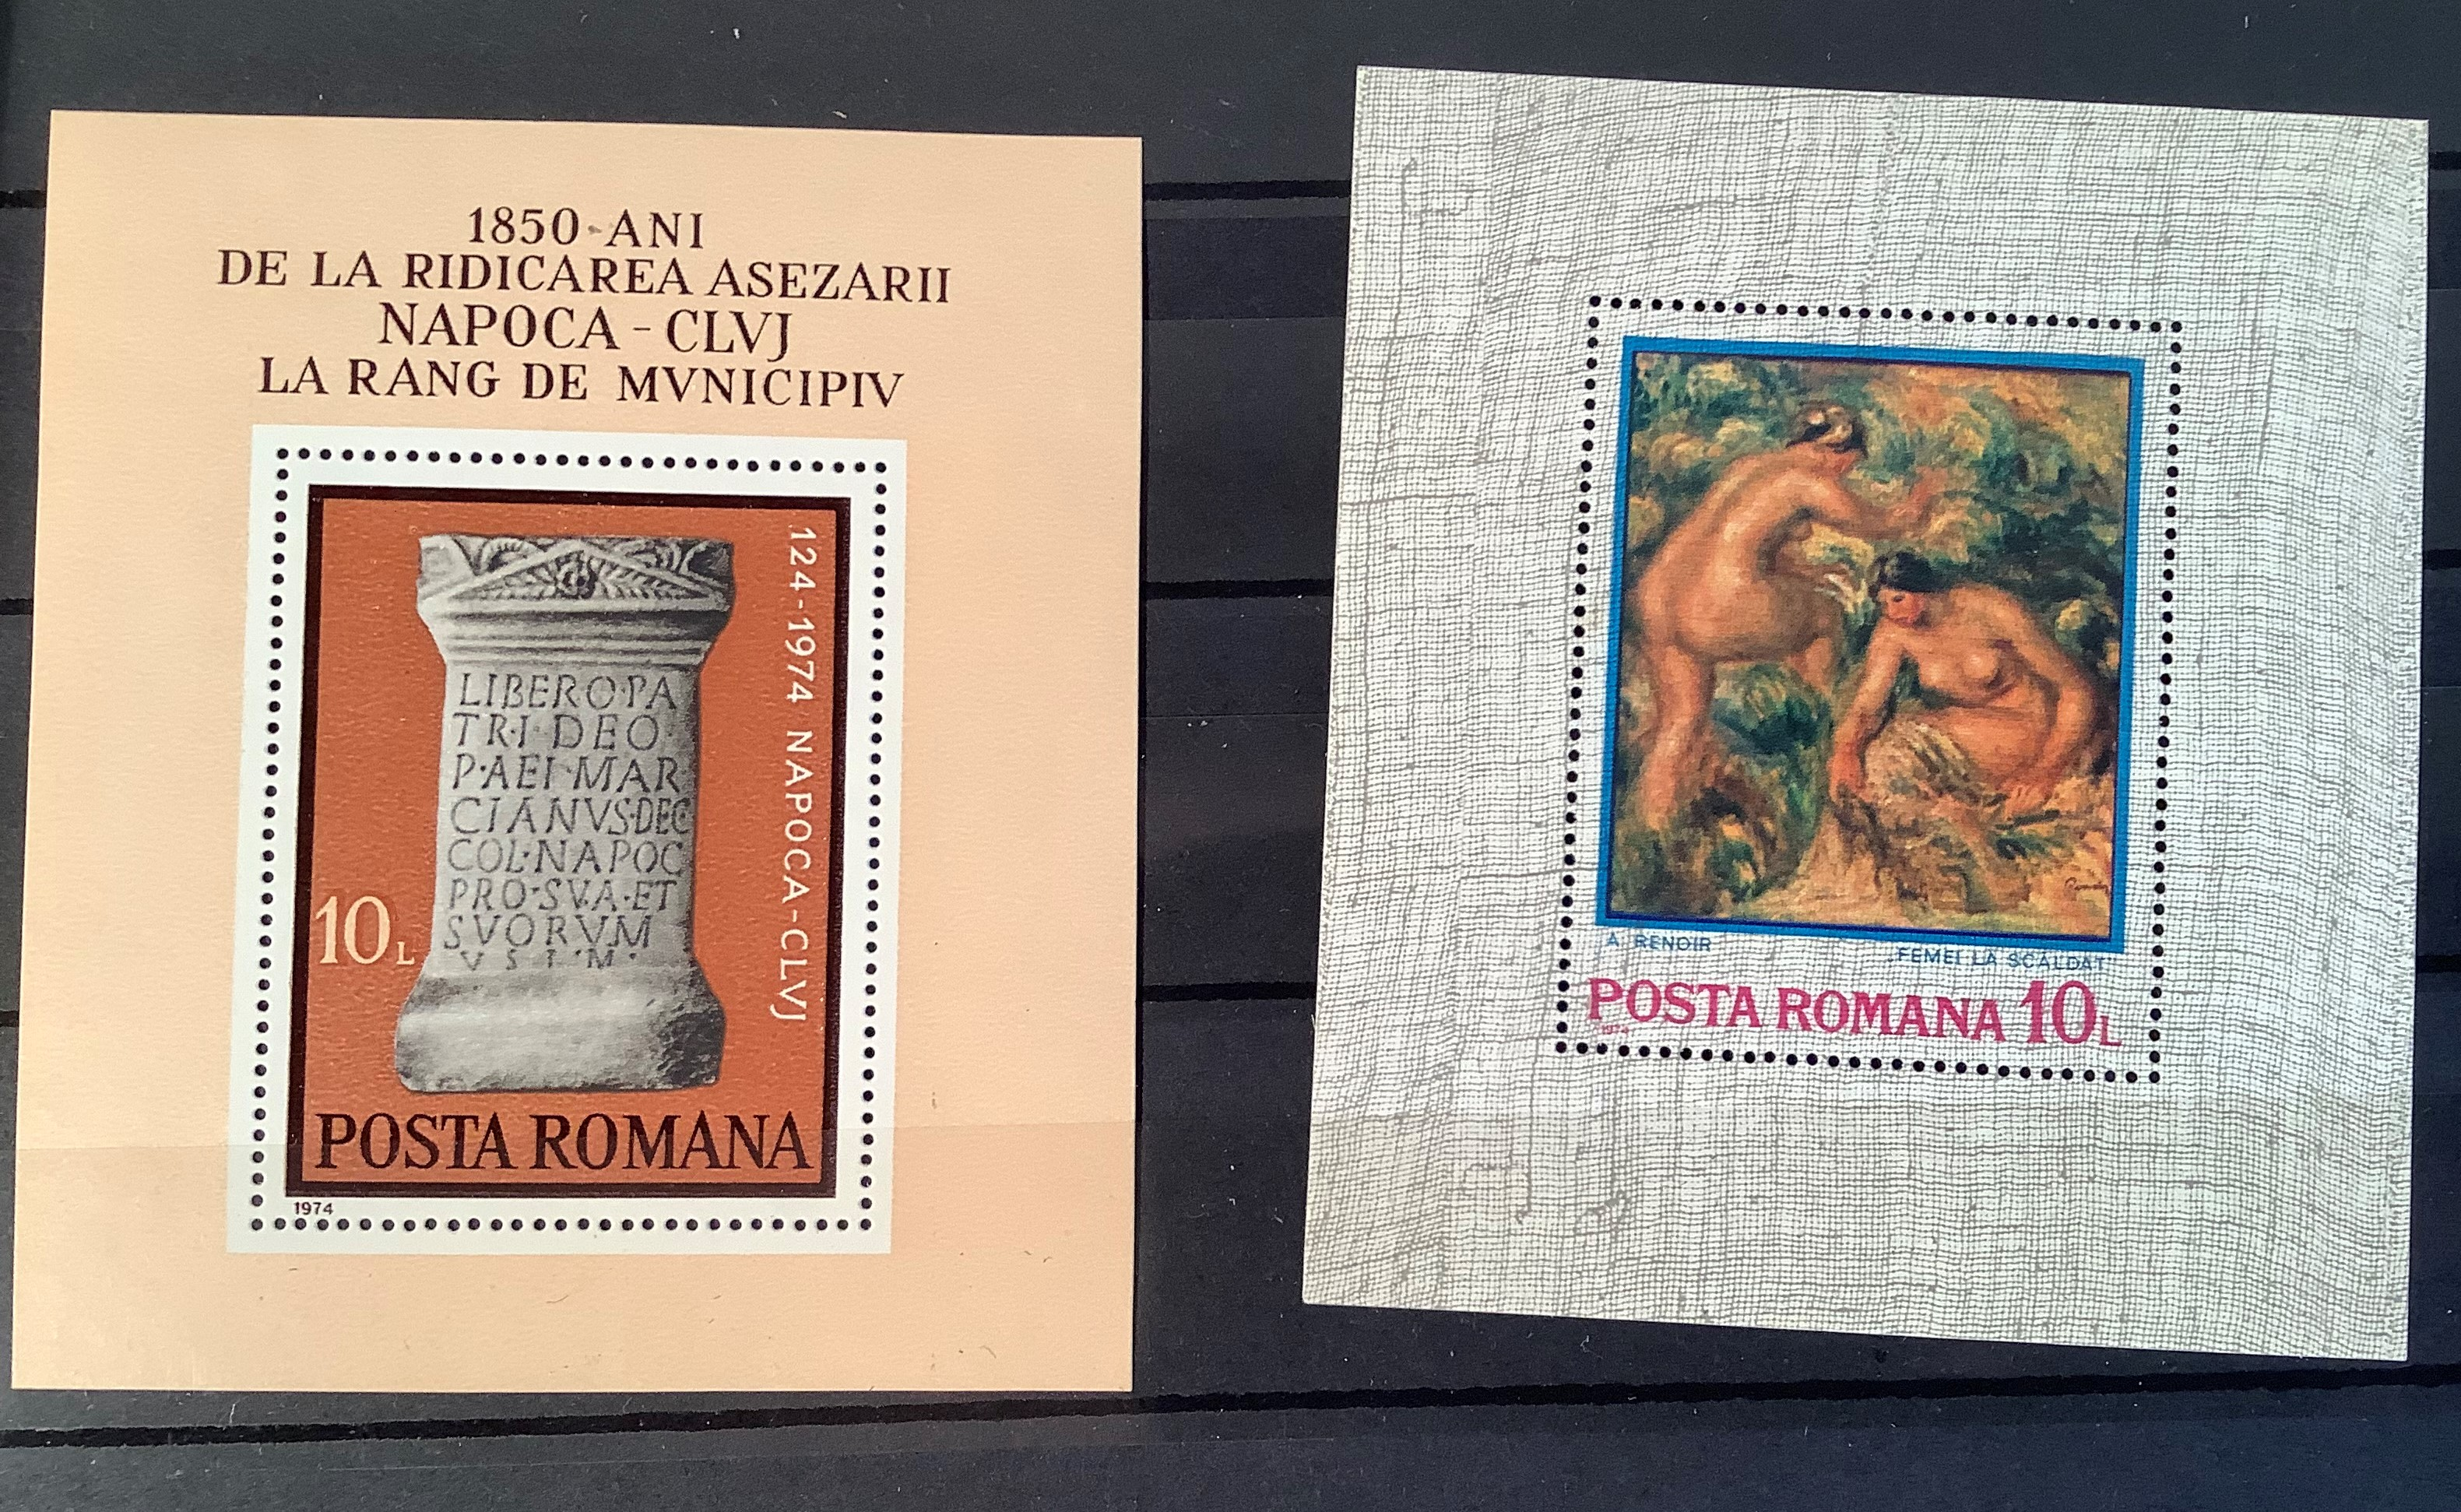 Three Stock Books with a large collection of Romanian postage stamps dating from 1925 to 1990s, a - Image 4 of 7